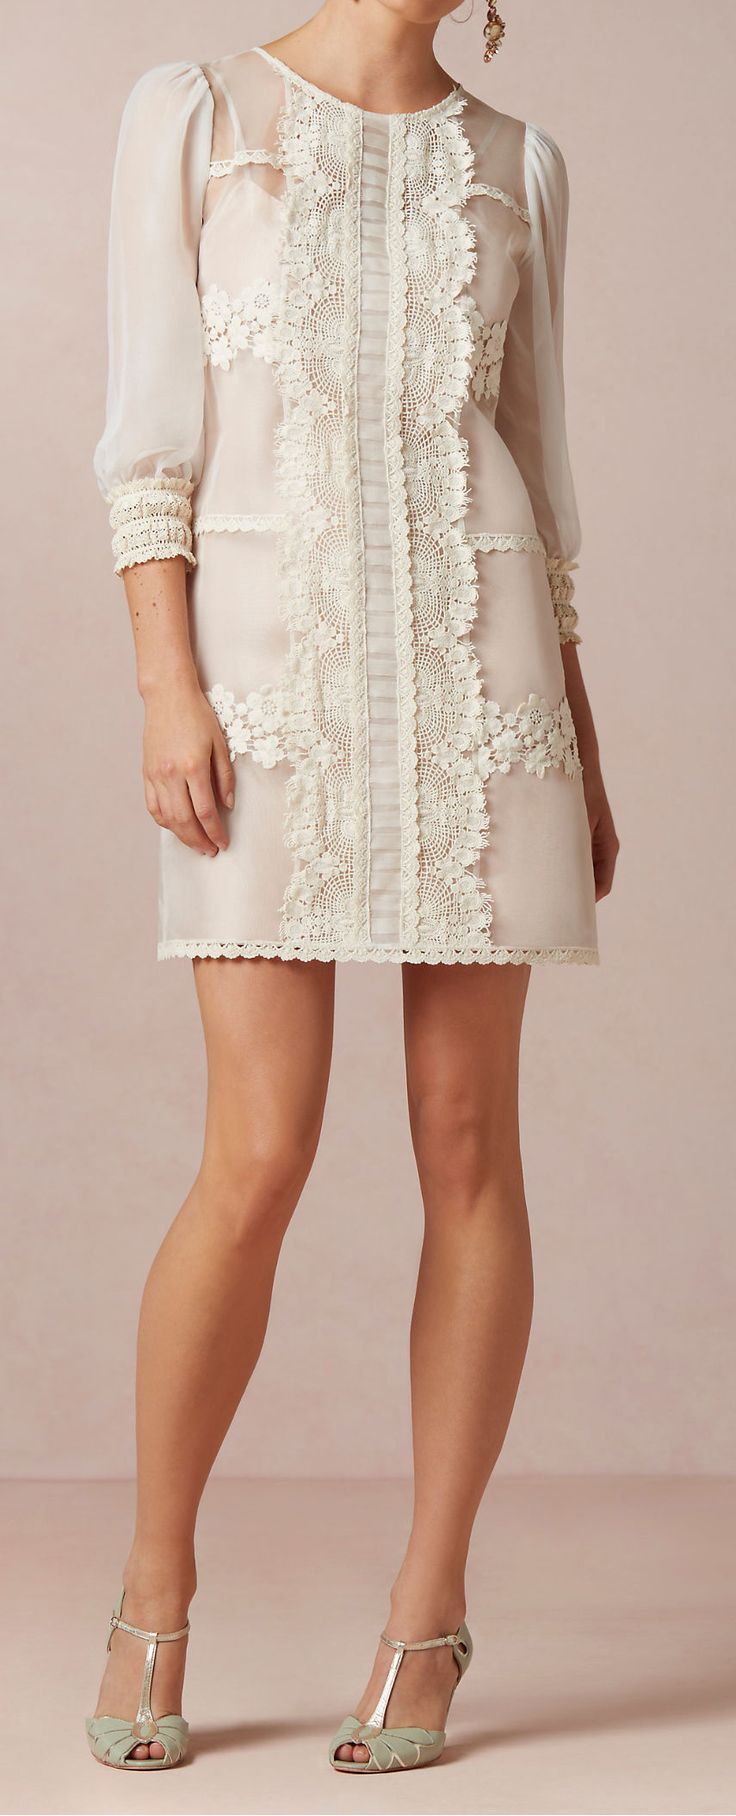 www.Keren-Center.com Sweet lace dress